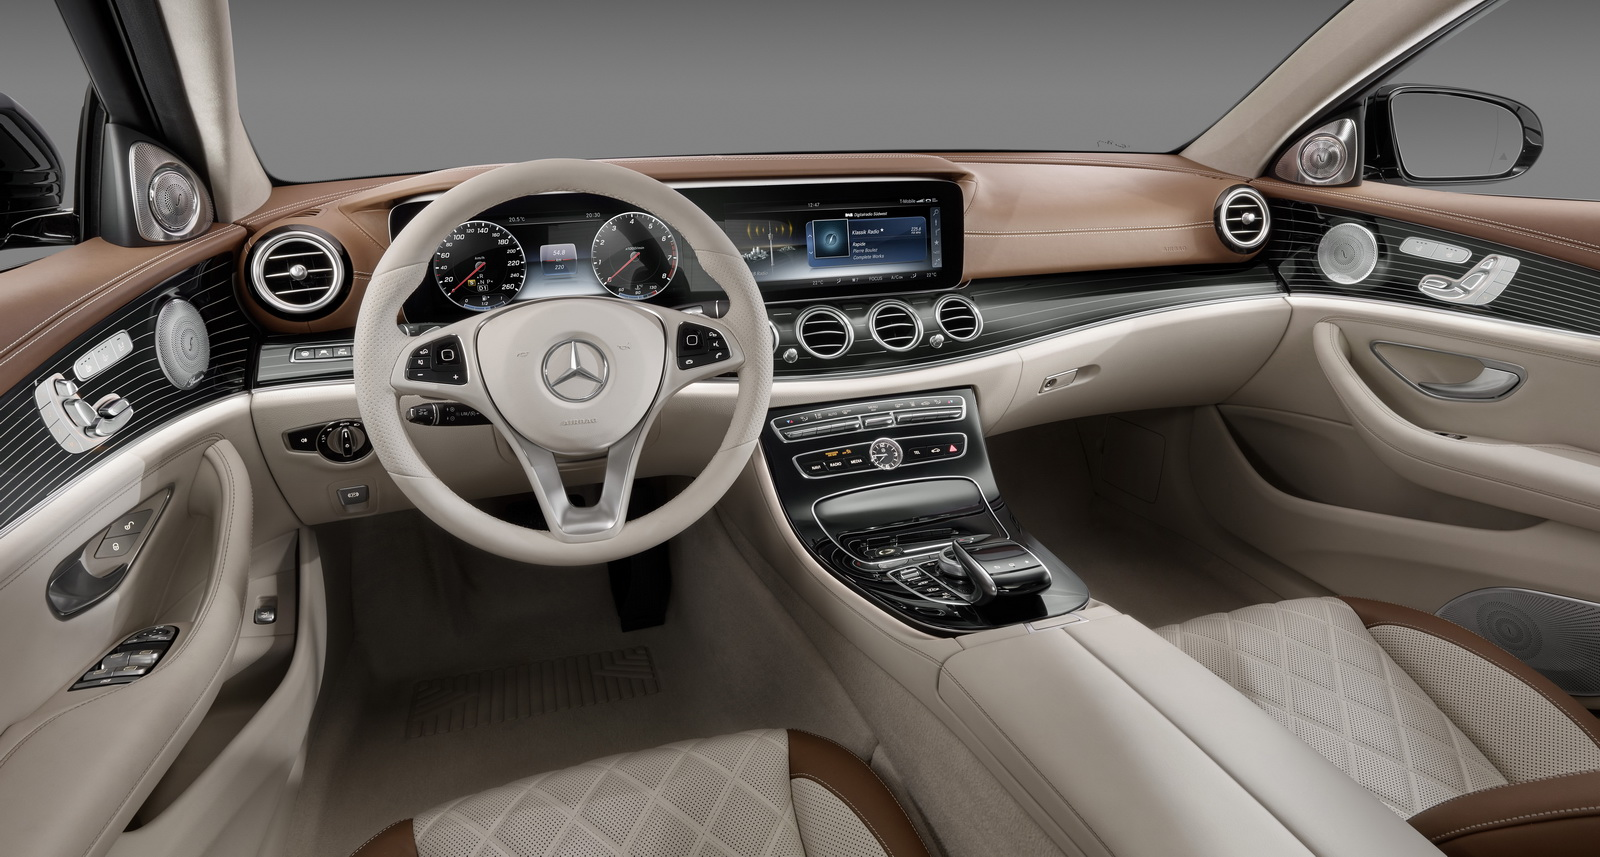 2017 Mercedes Benz E400 Cabriolet on 2010 mercedes s400 interior